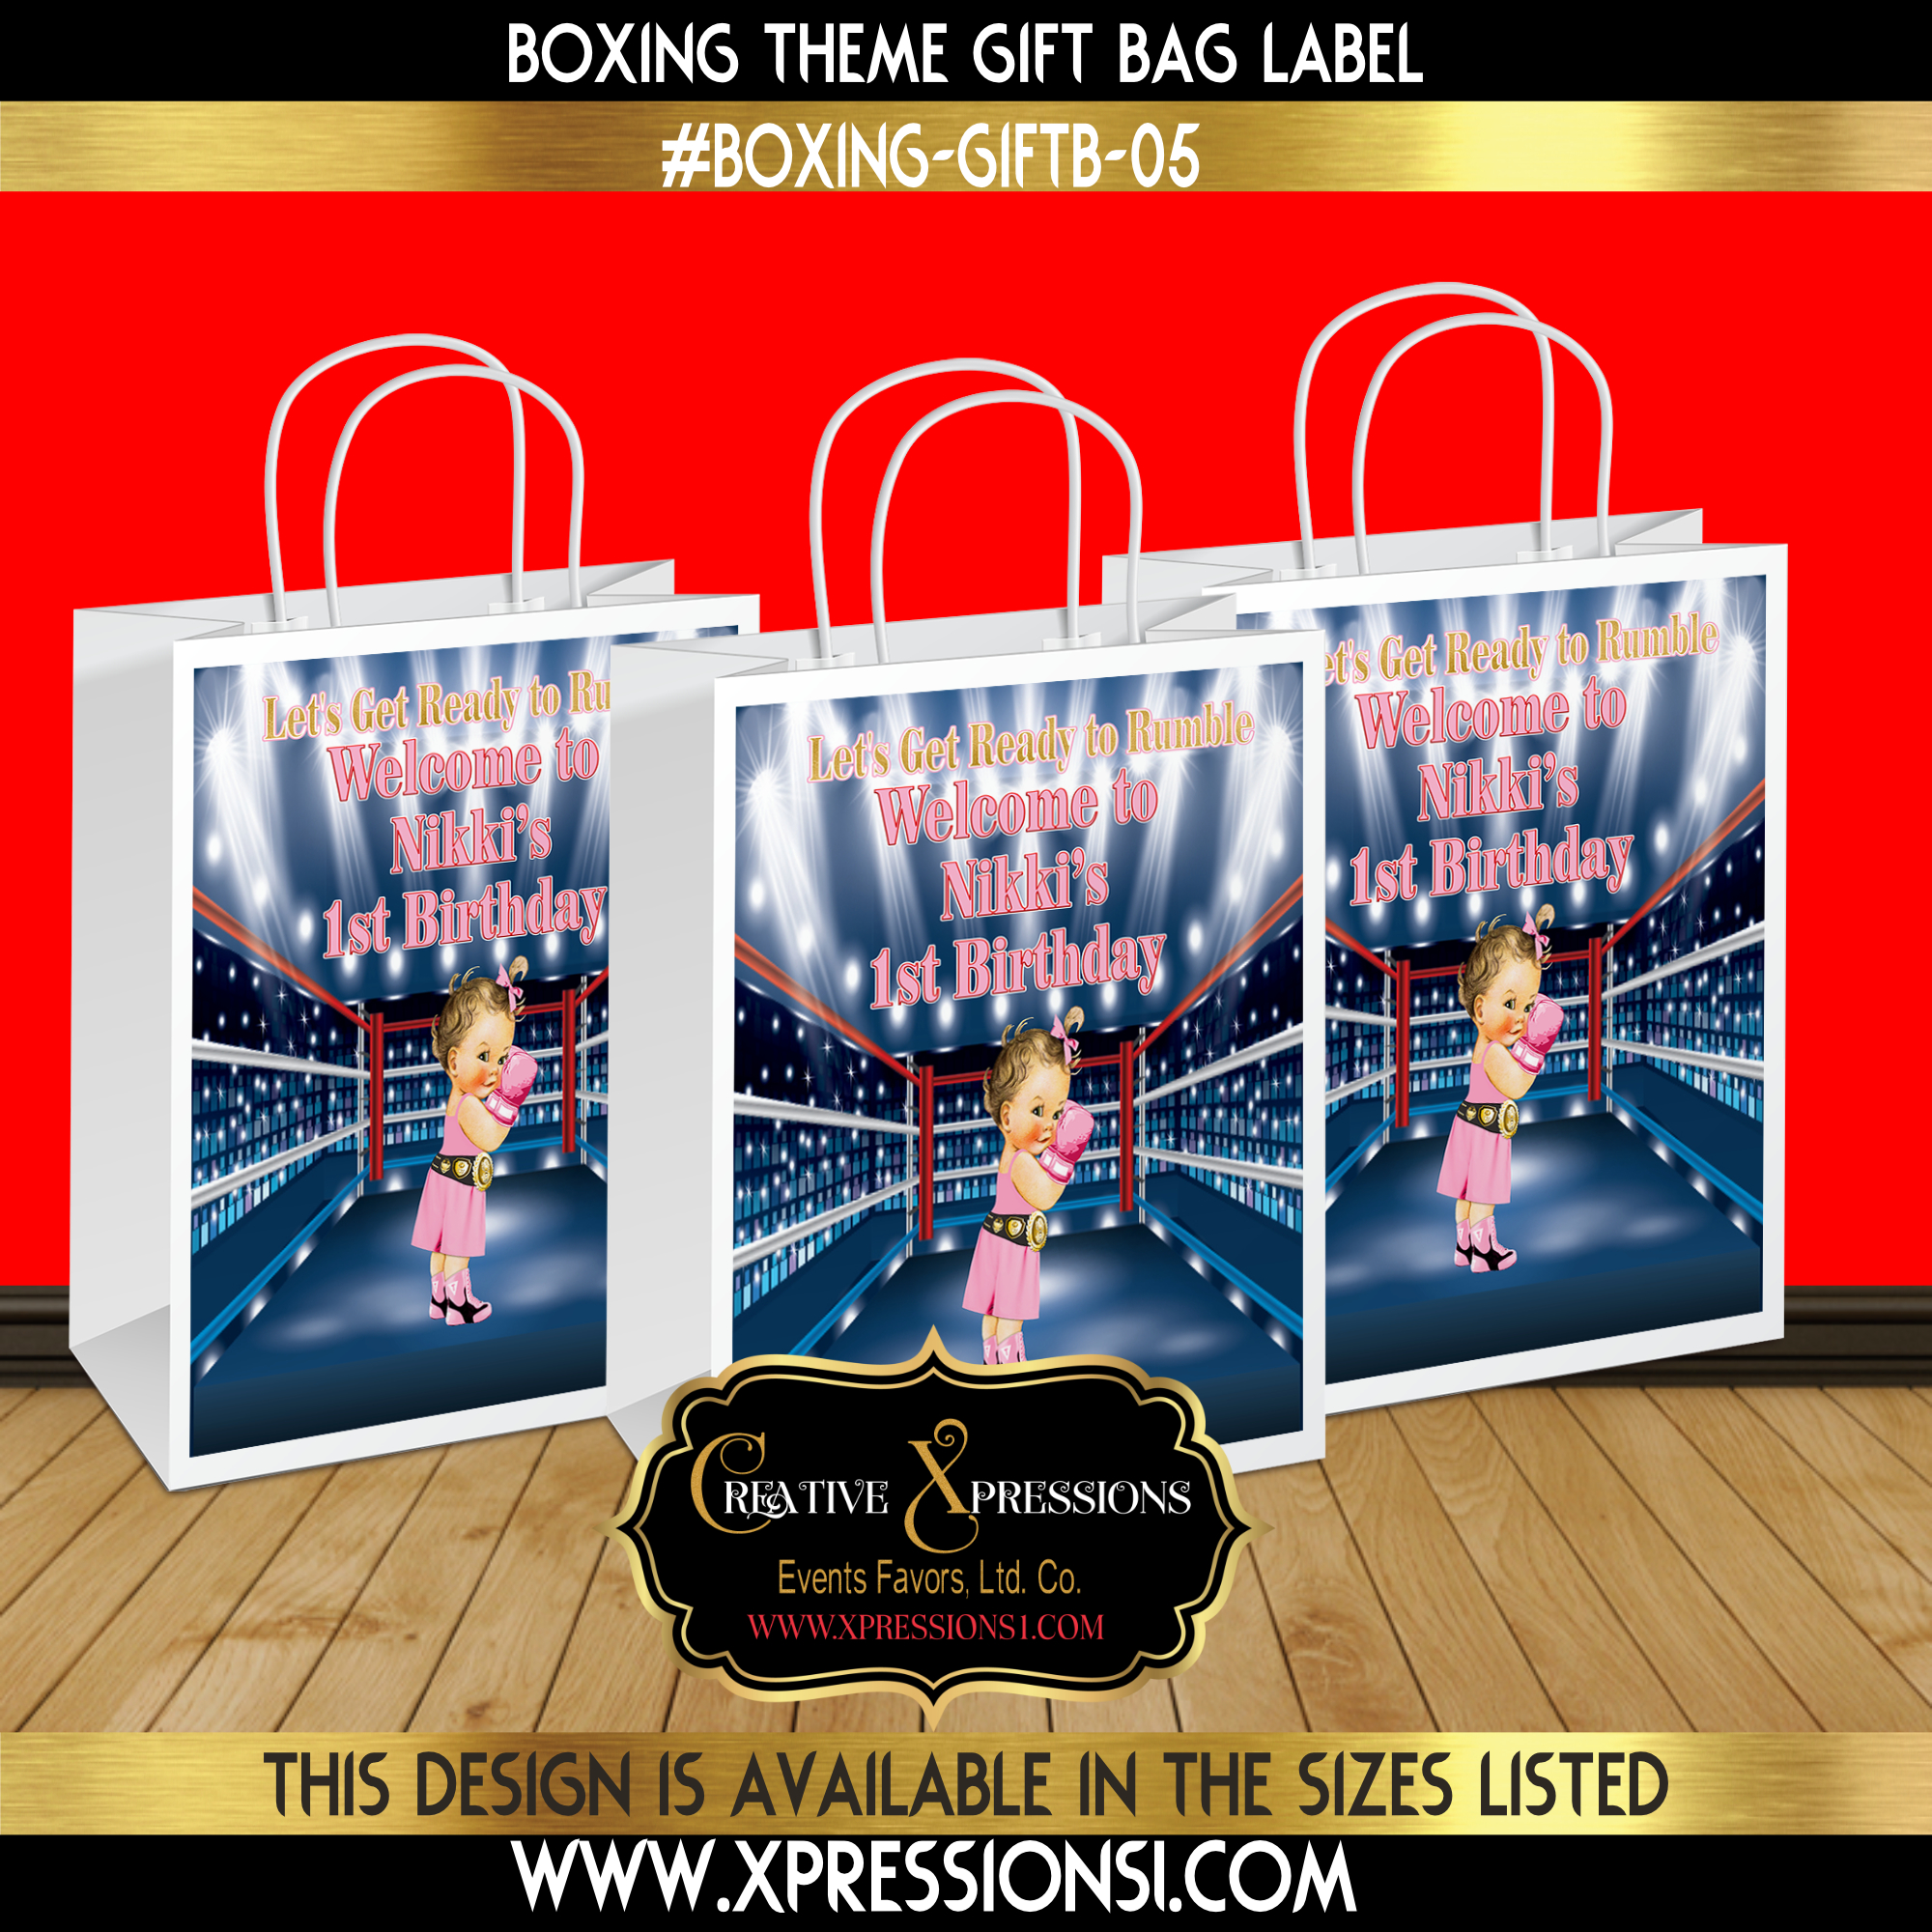 Pink and Gold Boxing Gift Bag